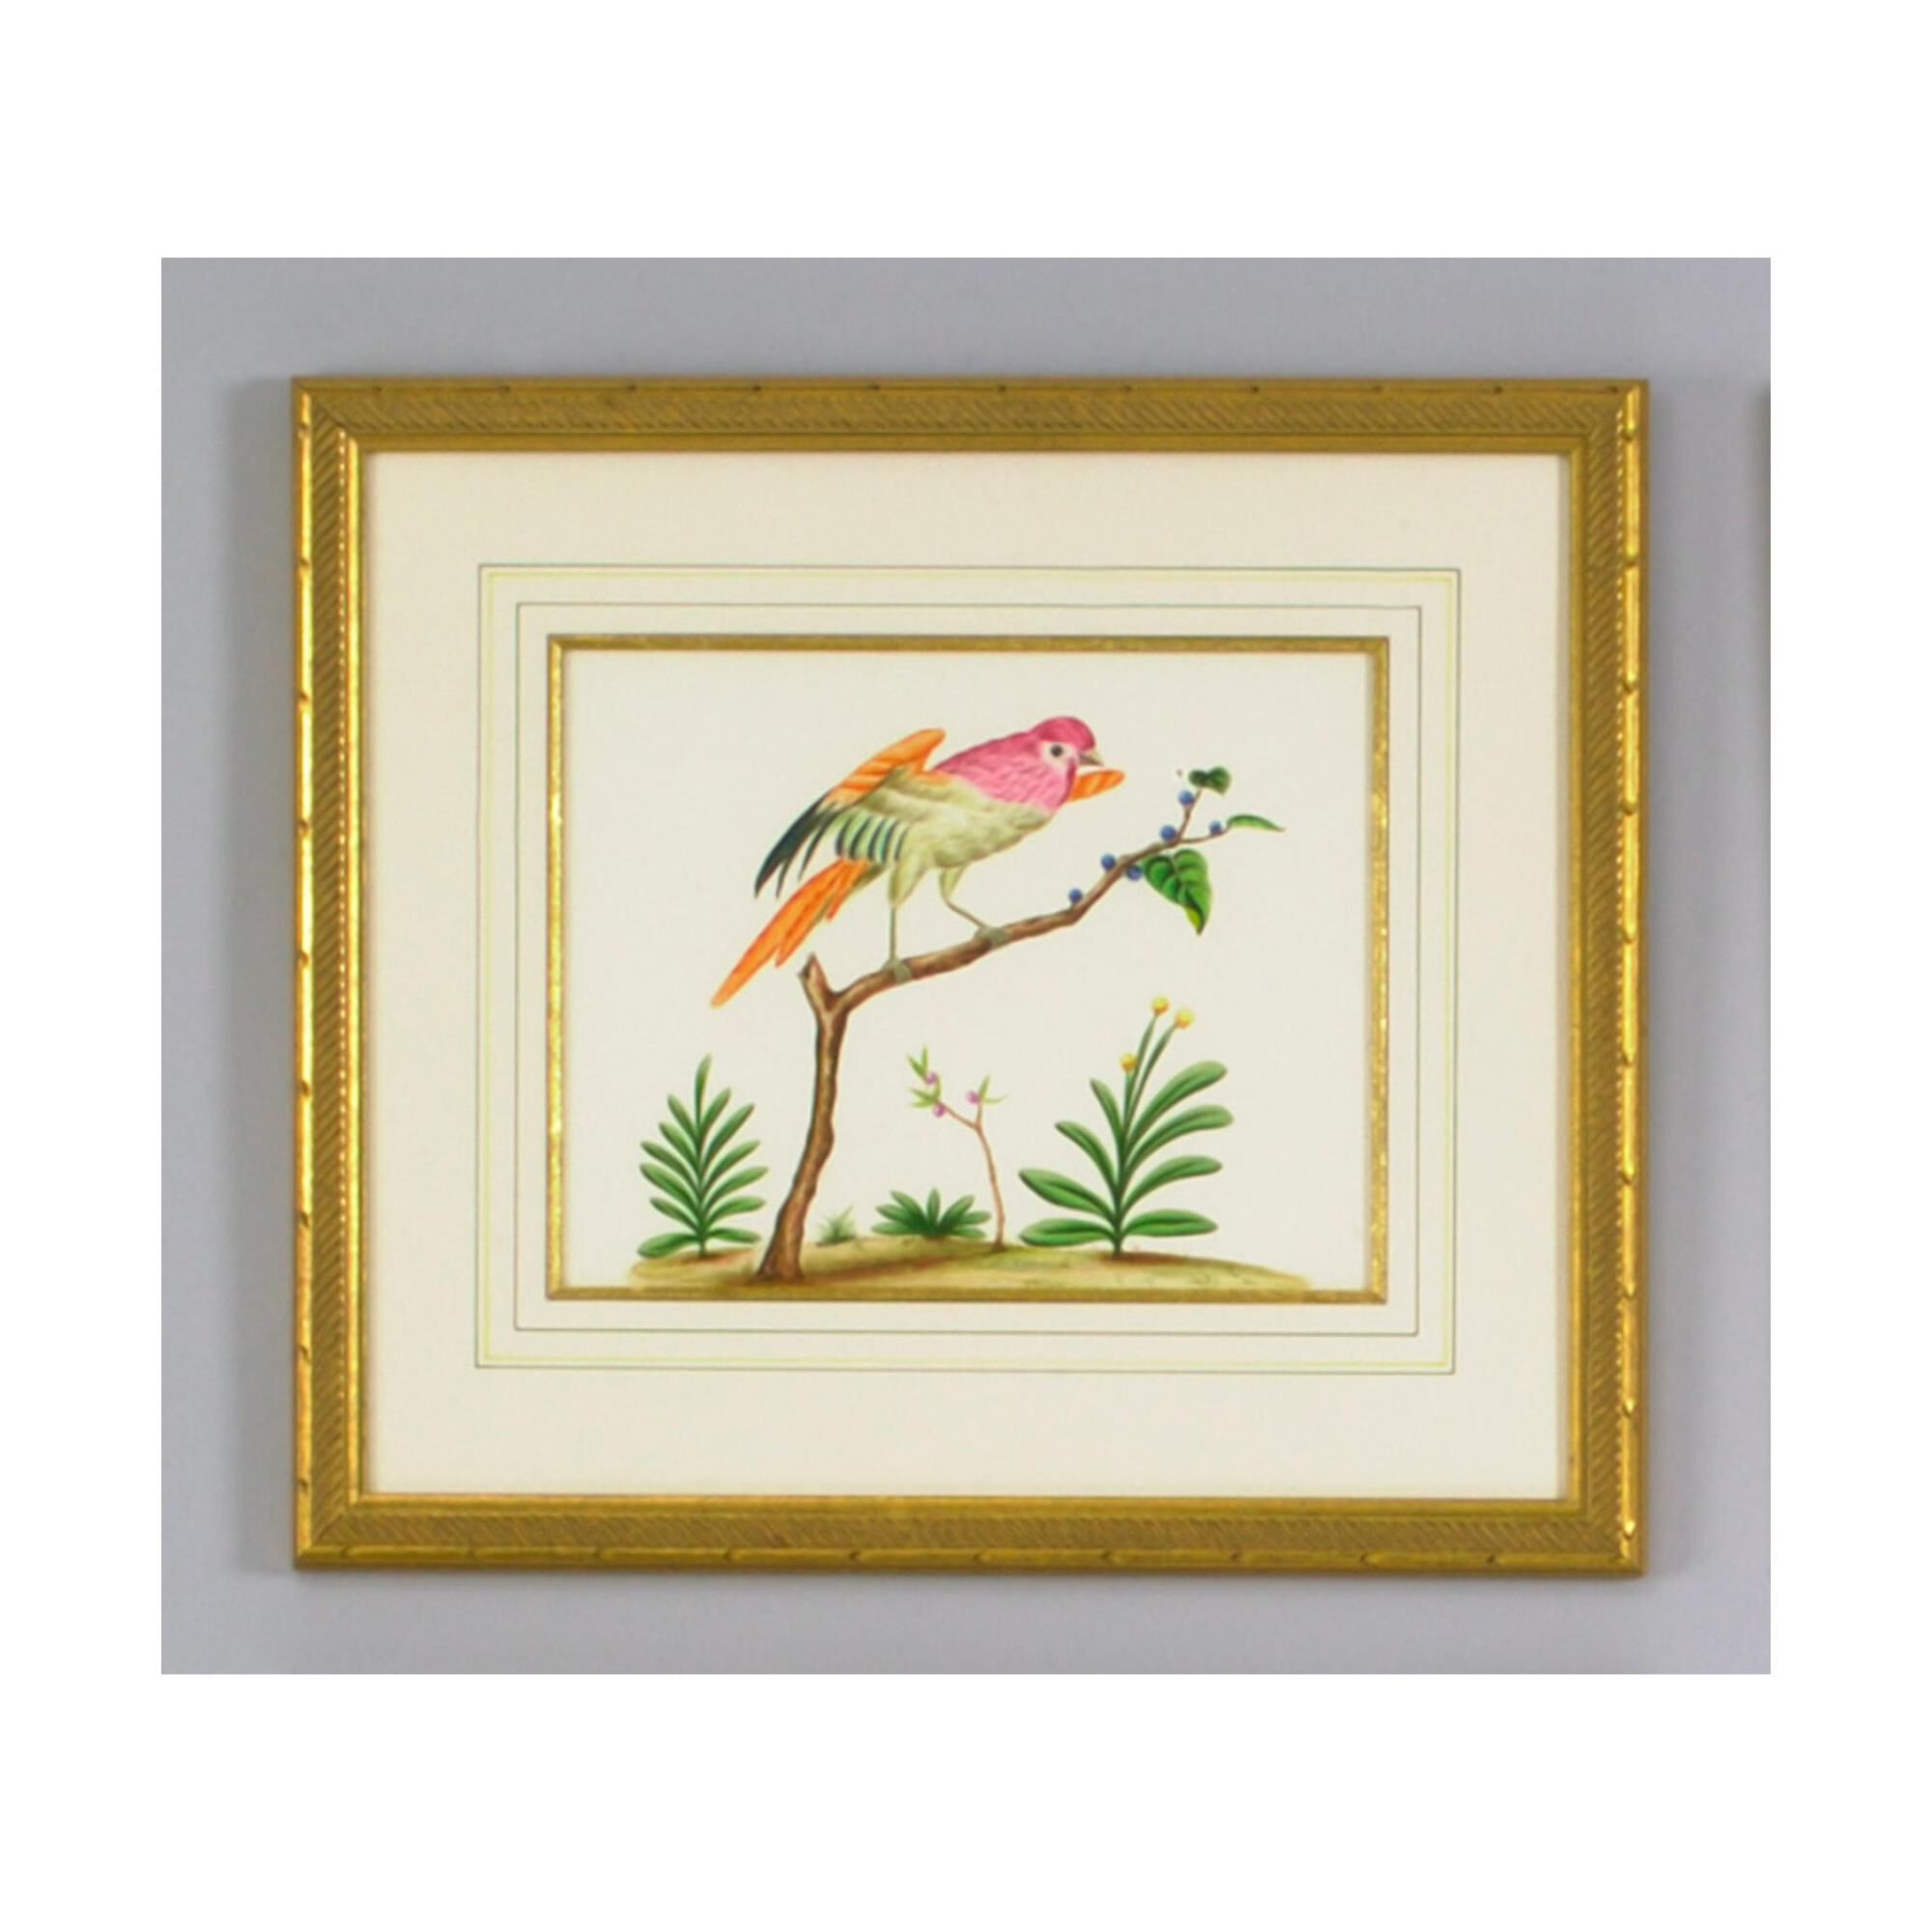 Chelsea House Multicolor Bird Painting Multicolor Bird - 380283 Painting (1750531) photo